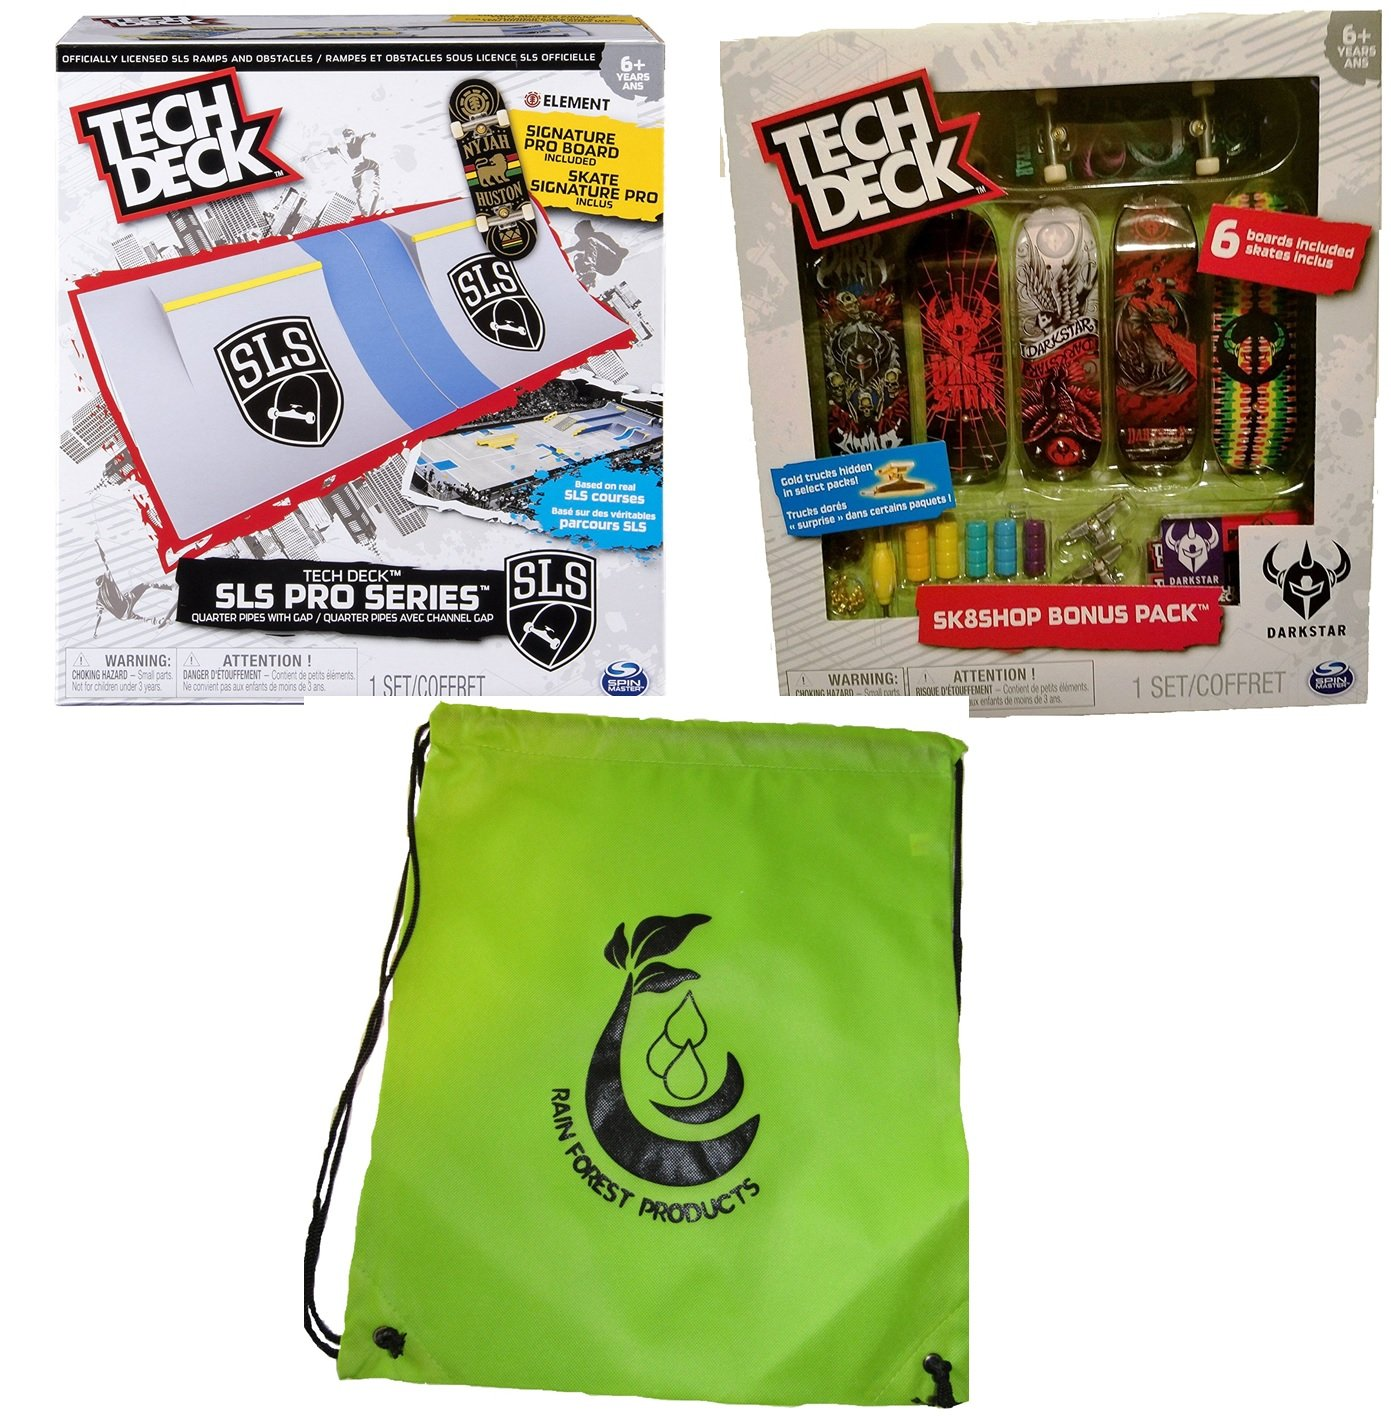 Tech Deck Bundle SLS Pro Series Skate Park Quarter Pipes, Sk8shop Bonus Pack (Style may vary) and bag